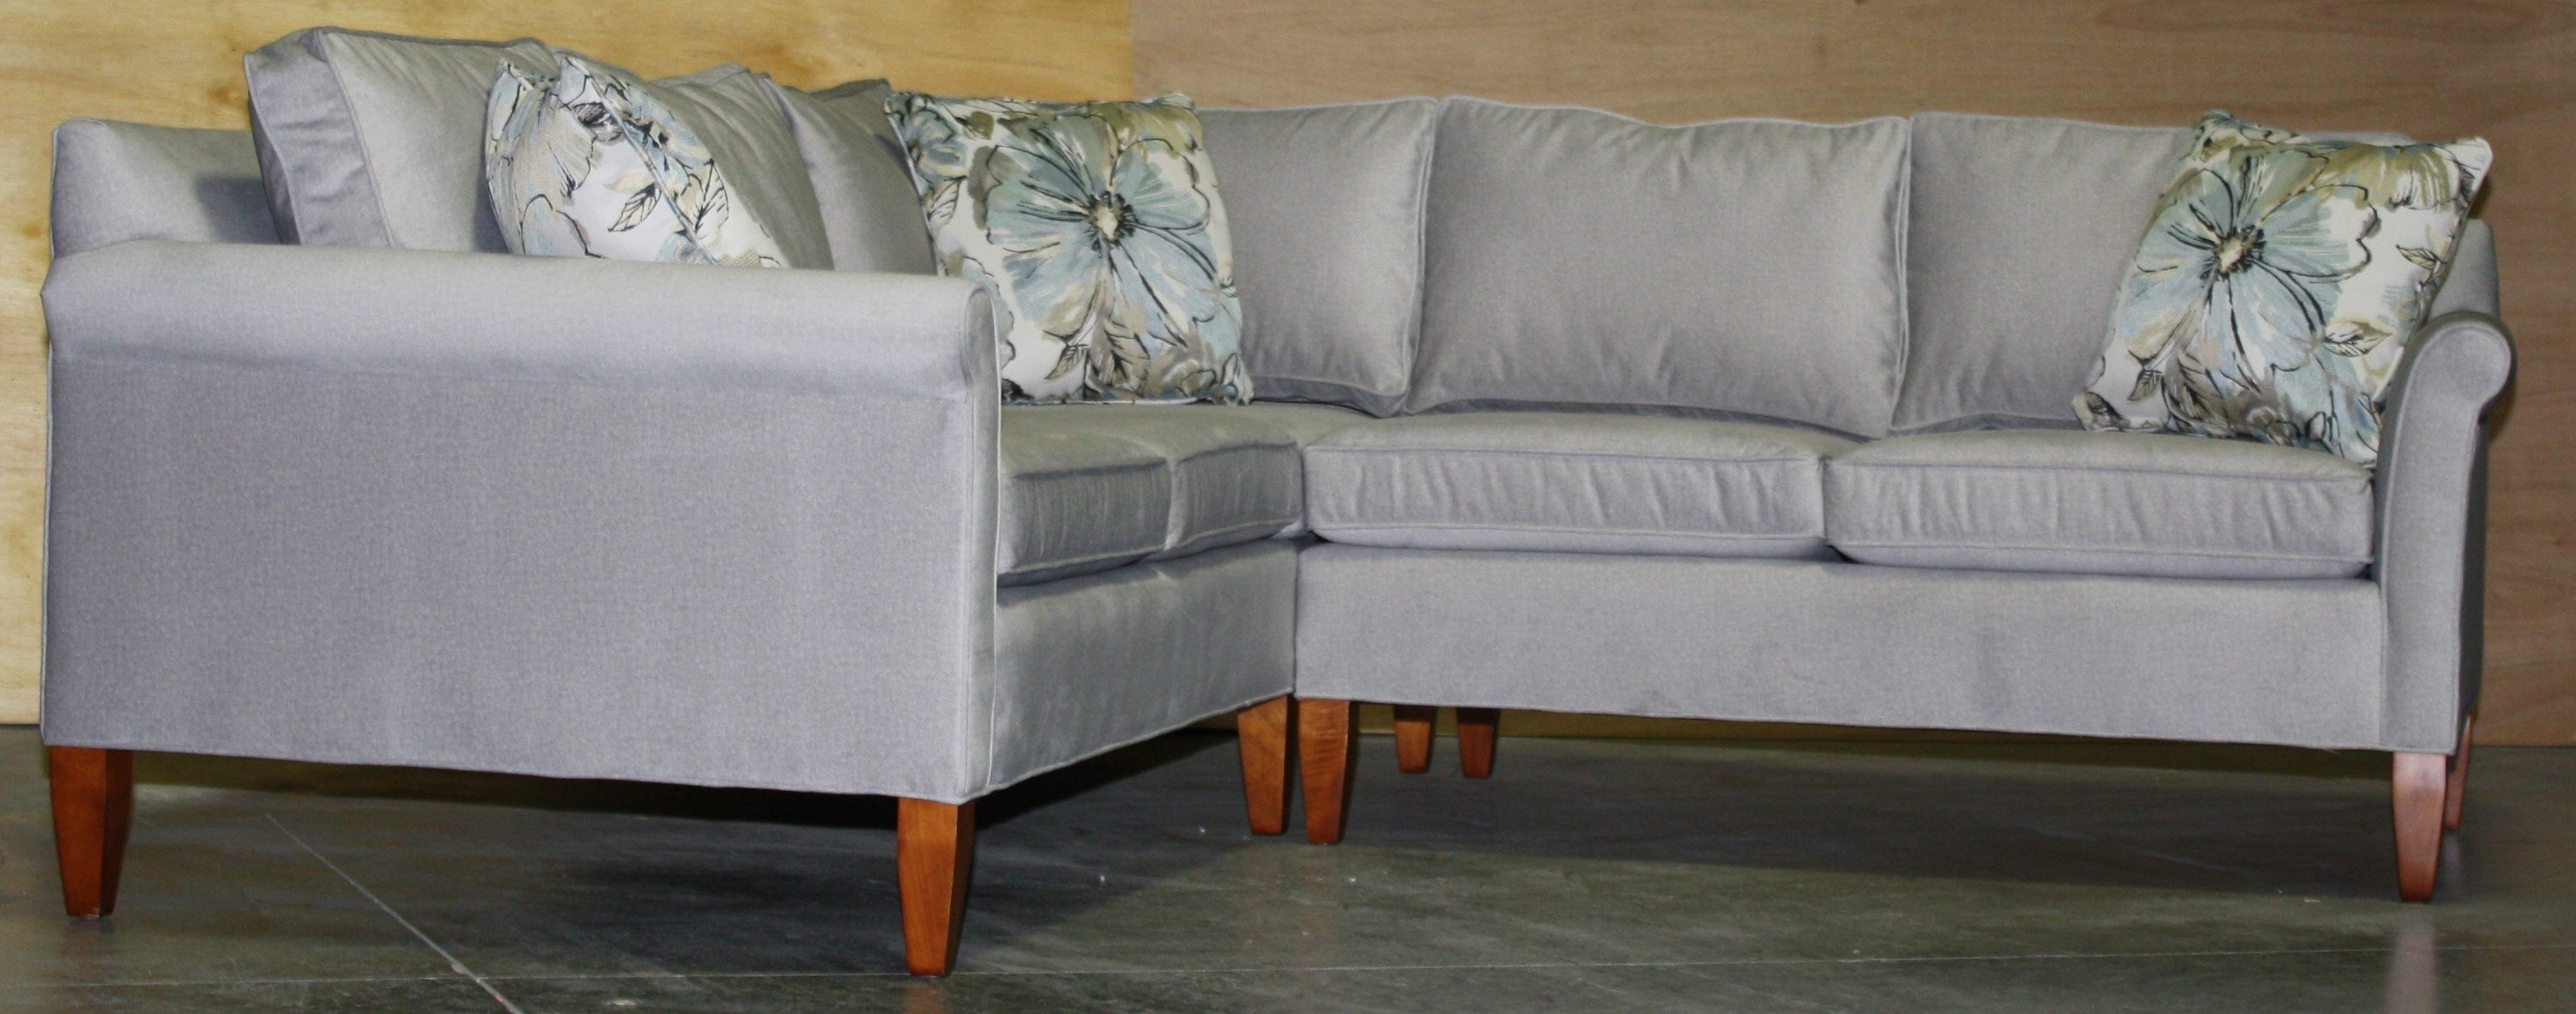 Good ... Non Toxic Stain Protected Otto Sectional Floor Model At Condofurniture. Com And Endicott Home ...